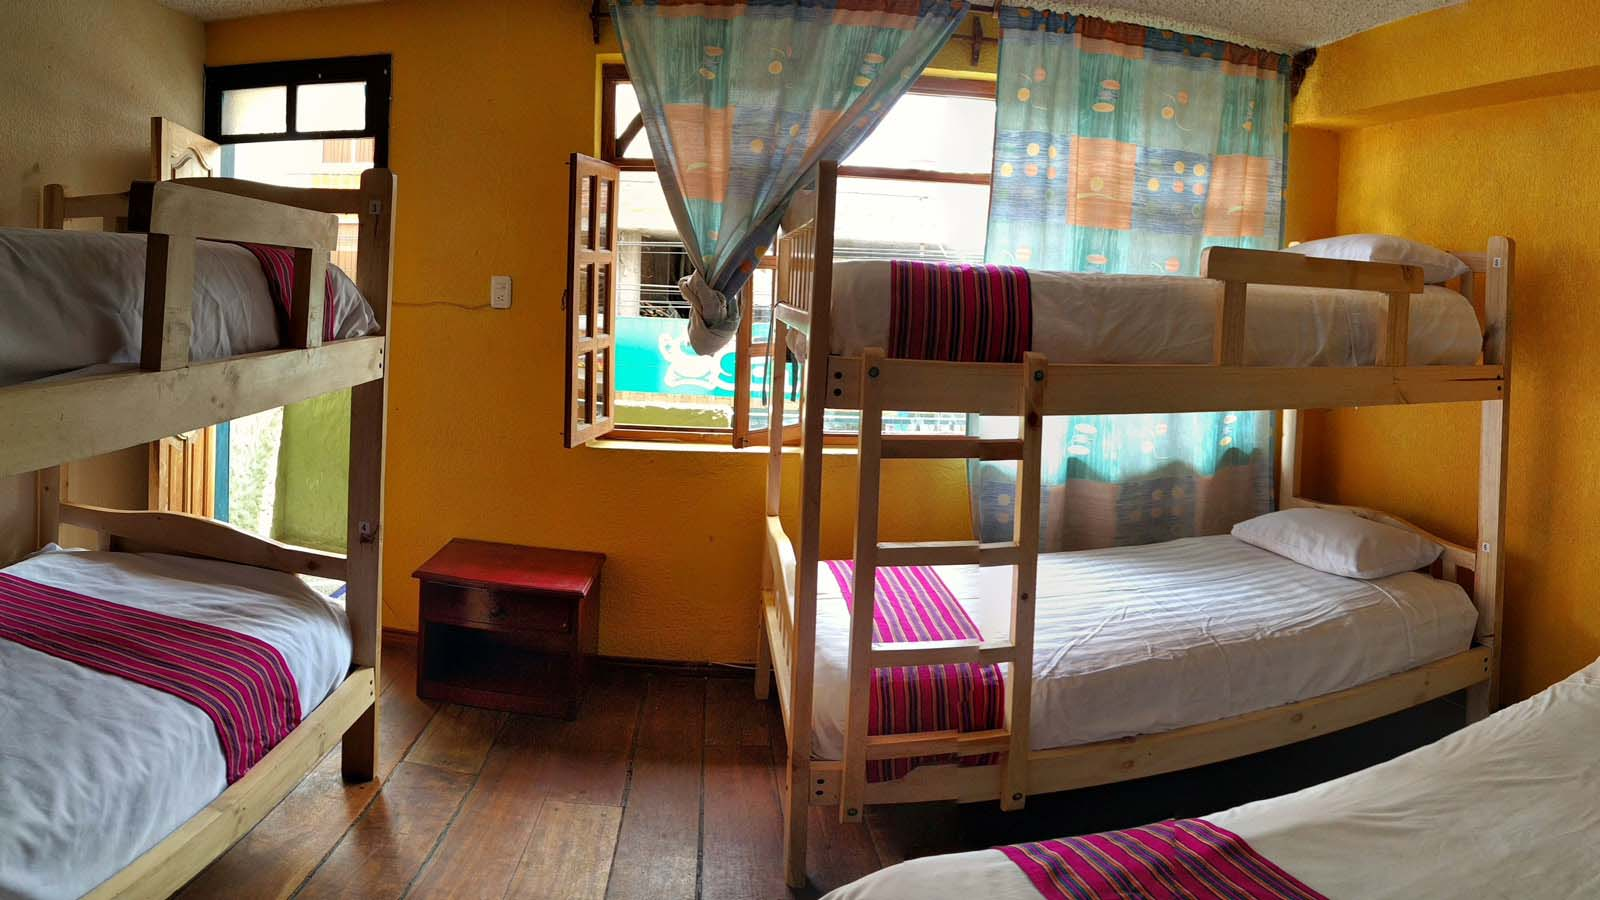 Backpacker Hostel in Baños Ecuador, Erupcion Hostel located in the center of Baños Ecuador